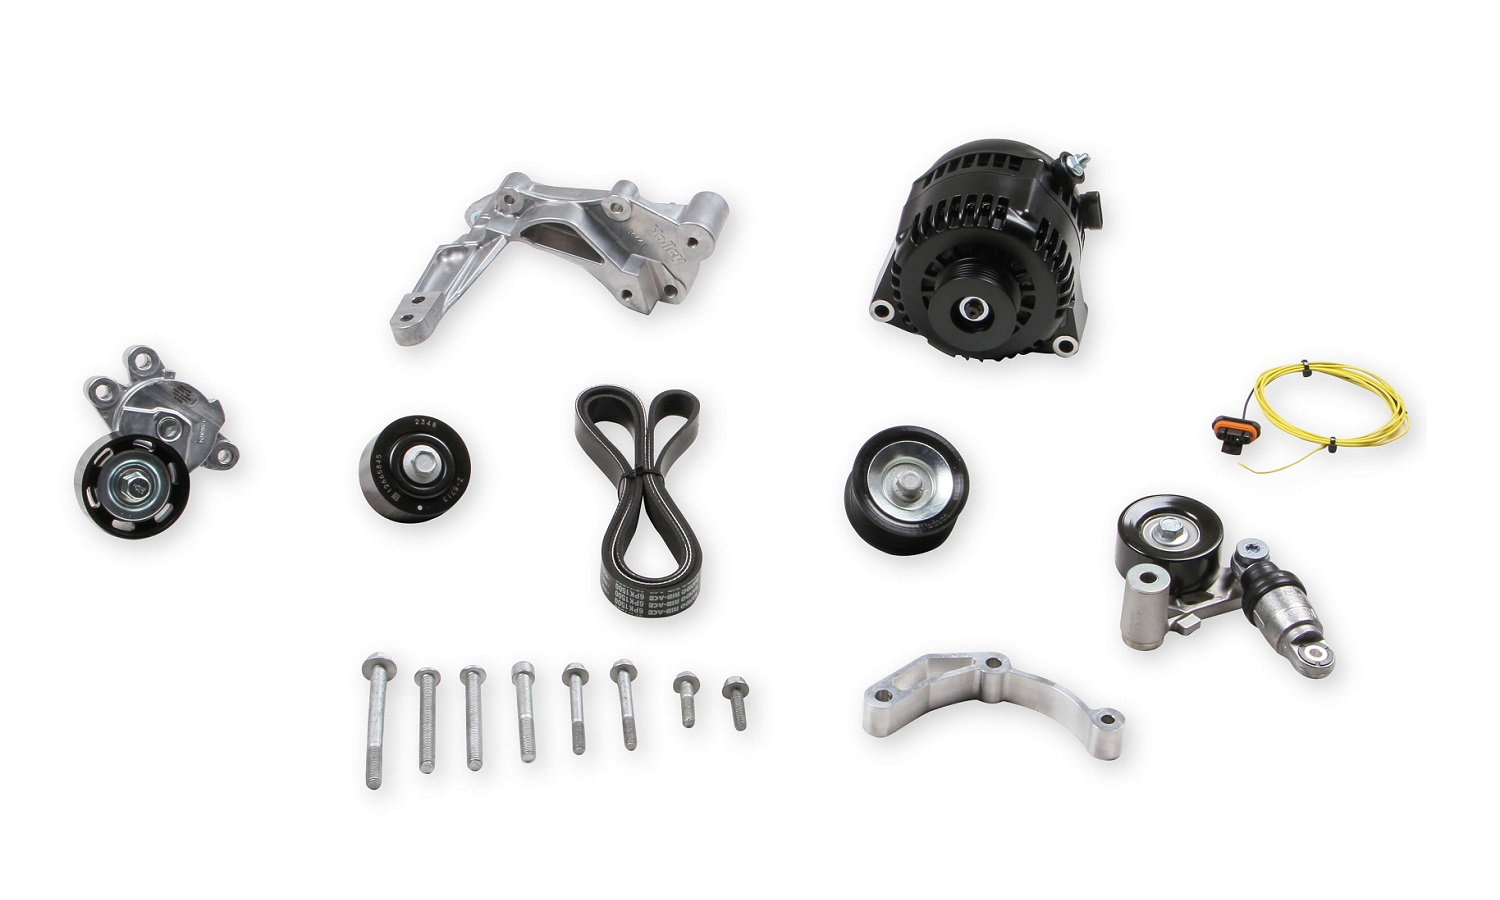 Holley Releases Accessory Drive Kits For Gm Lt Gen V Engines